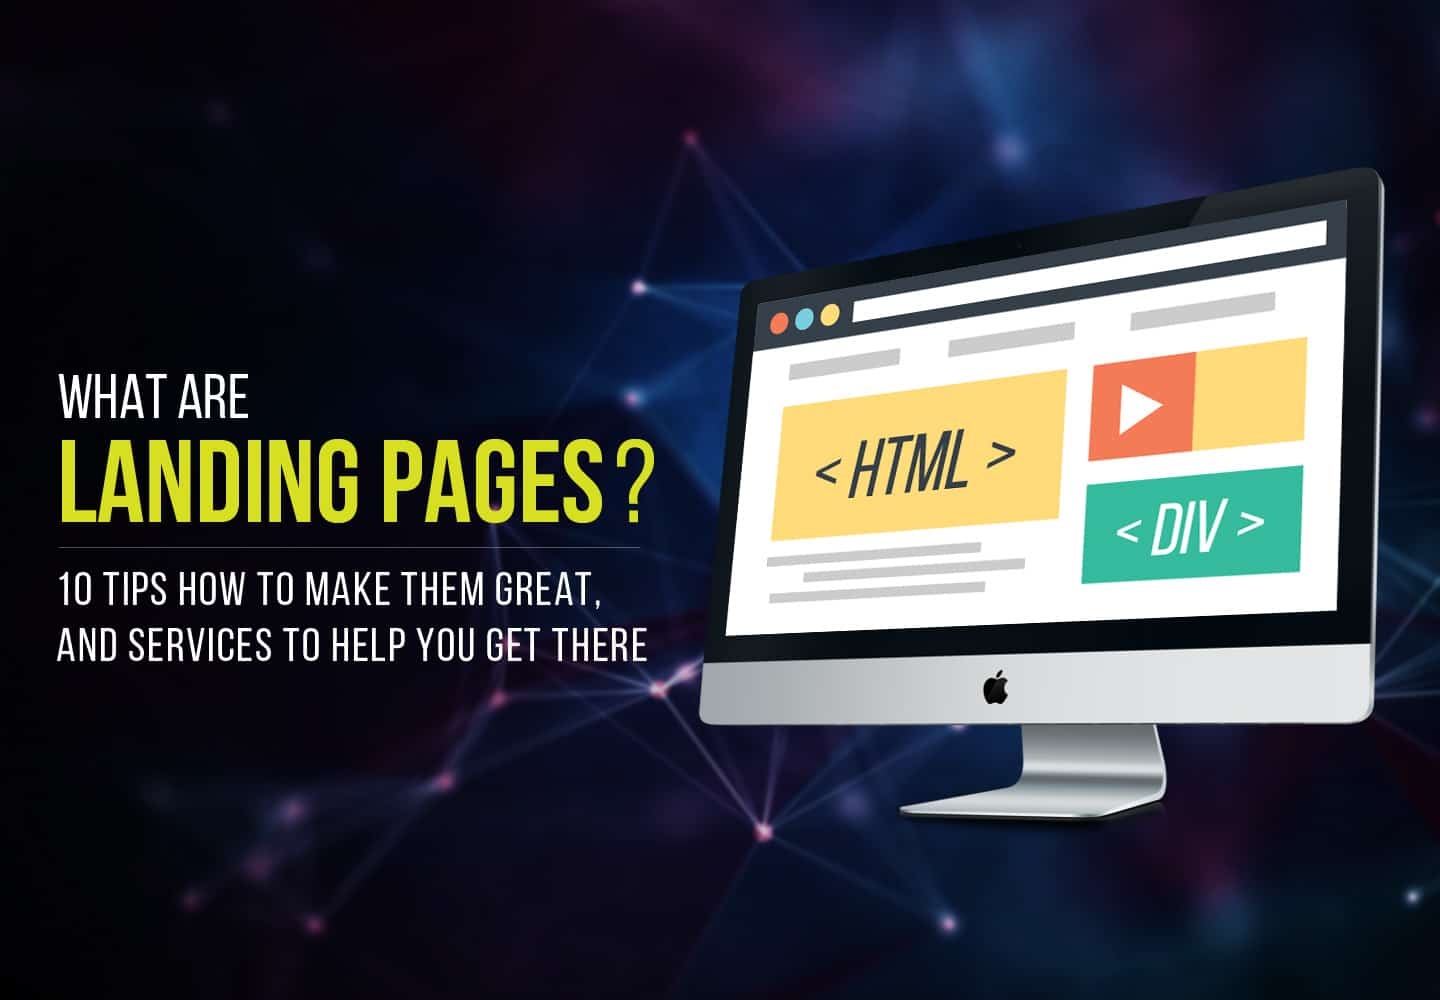 How to make great landing pages